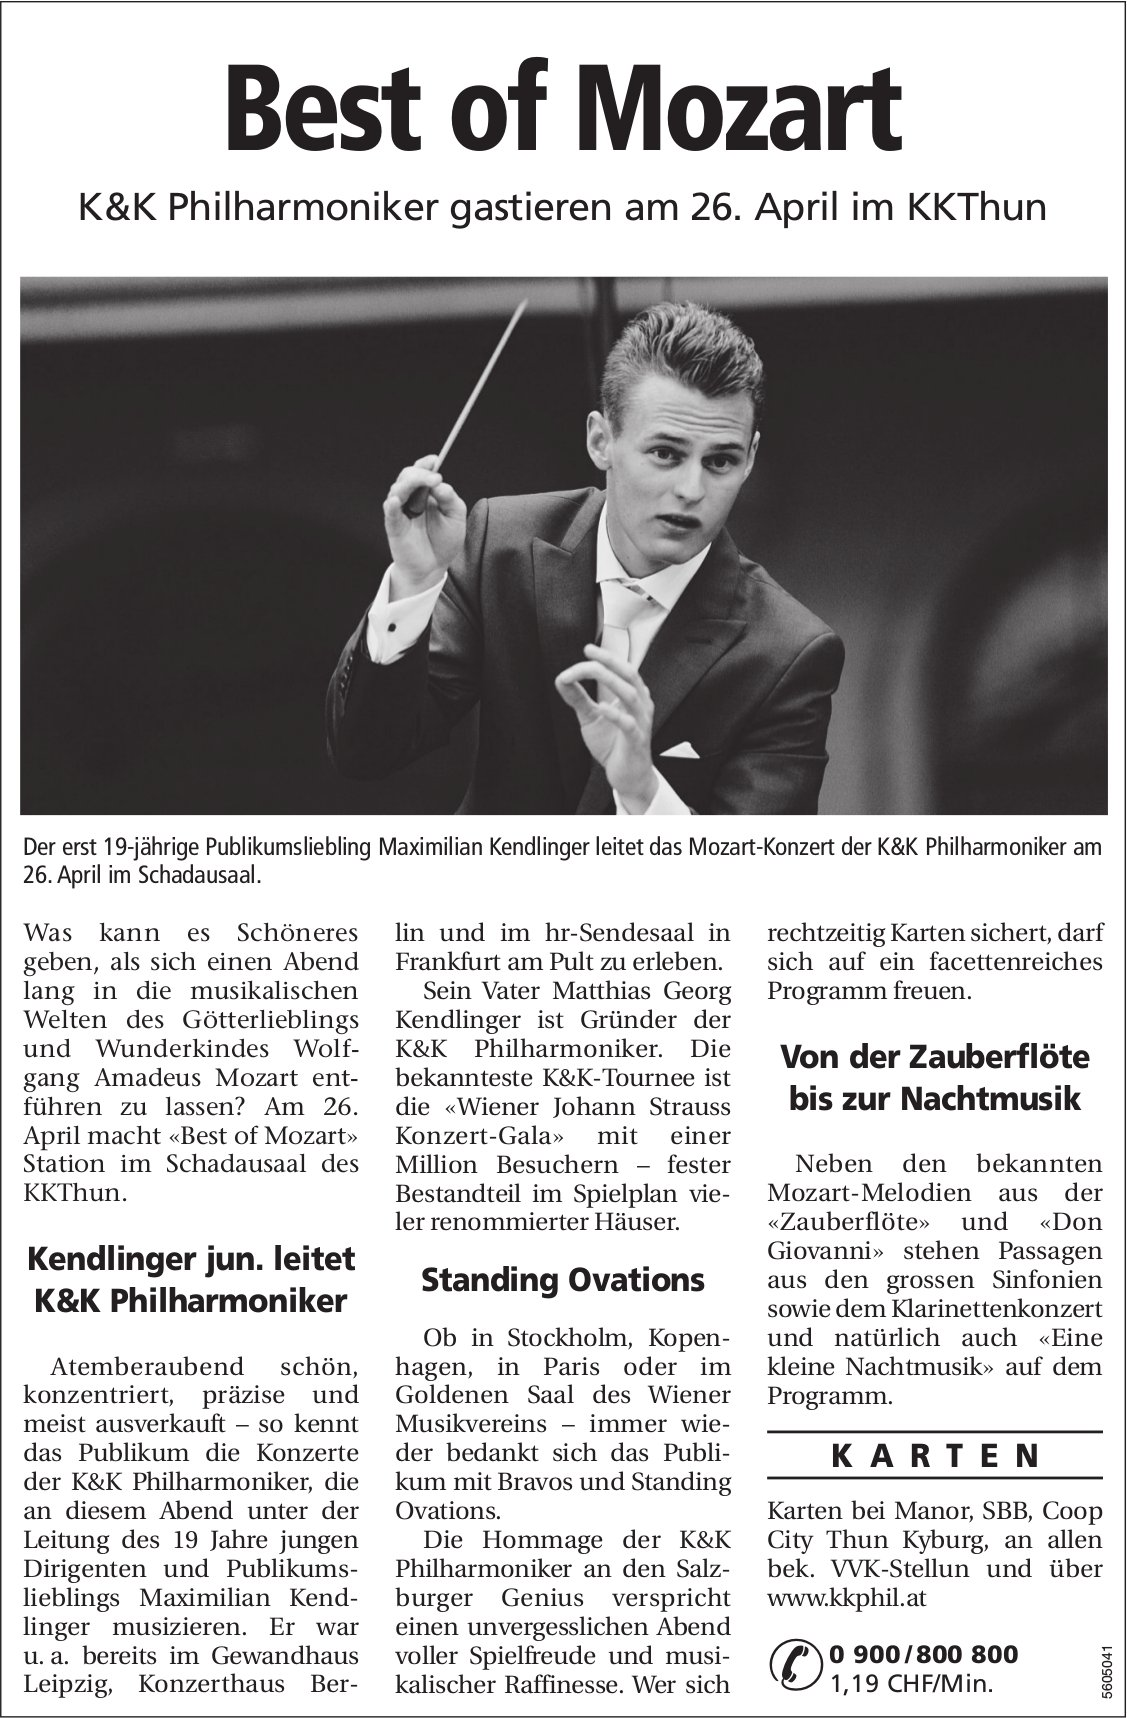 Best of Mozart - K&K Philharmoniker gastieren am 26. April im KKThun